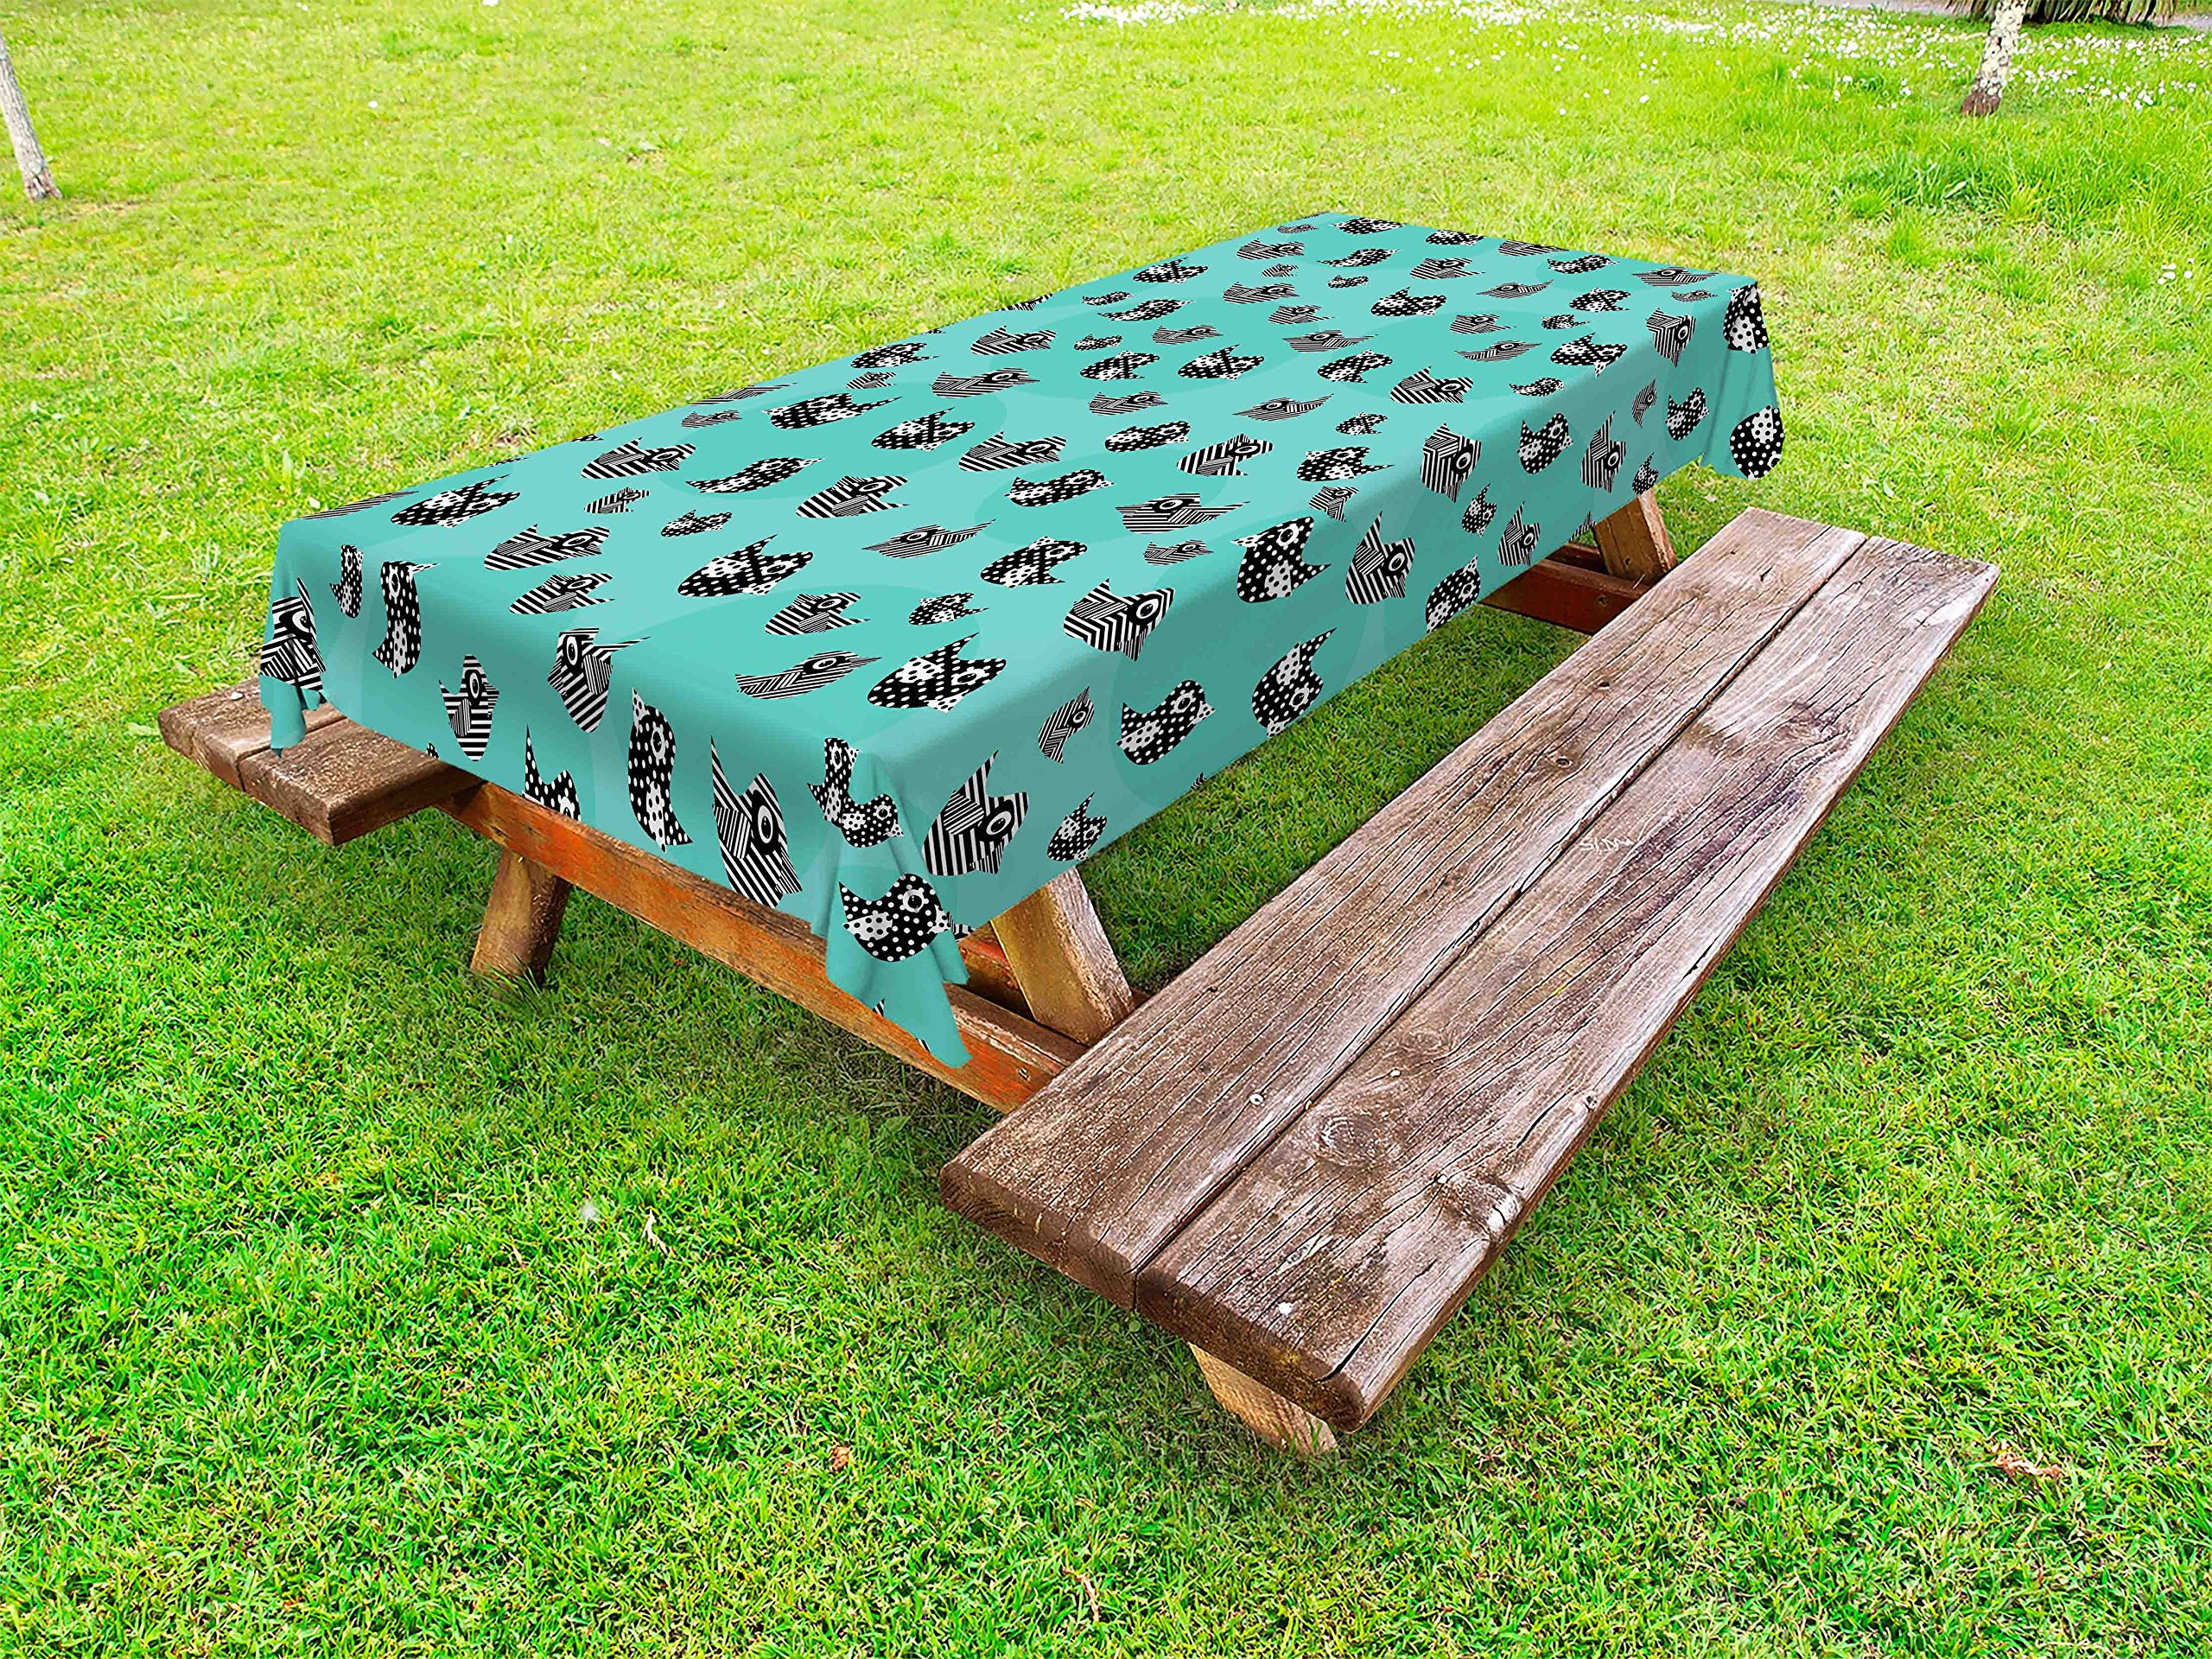 Lunarable Turquoise Outdoor Tablecloth, Pattern Flying Cute Birds Striped Paper Cut DIY Springtime Romantic Art, Decorative Washable Picnic Table Cloth, 58 X 84 inches, Seafoam Black White